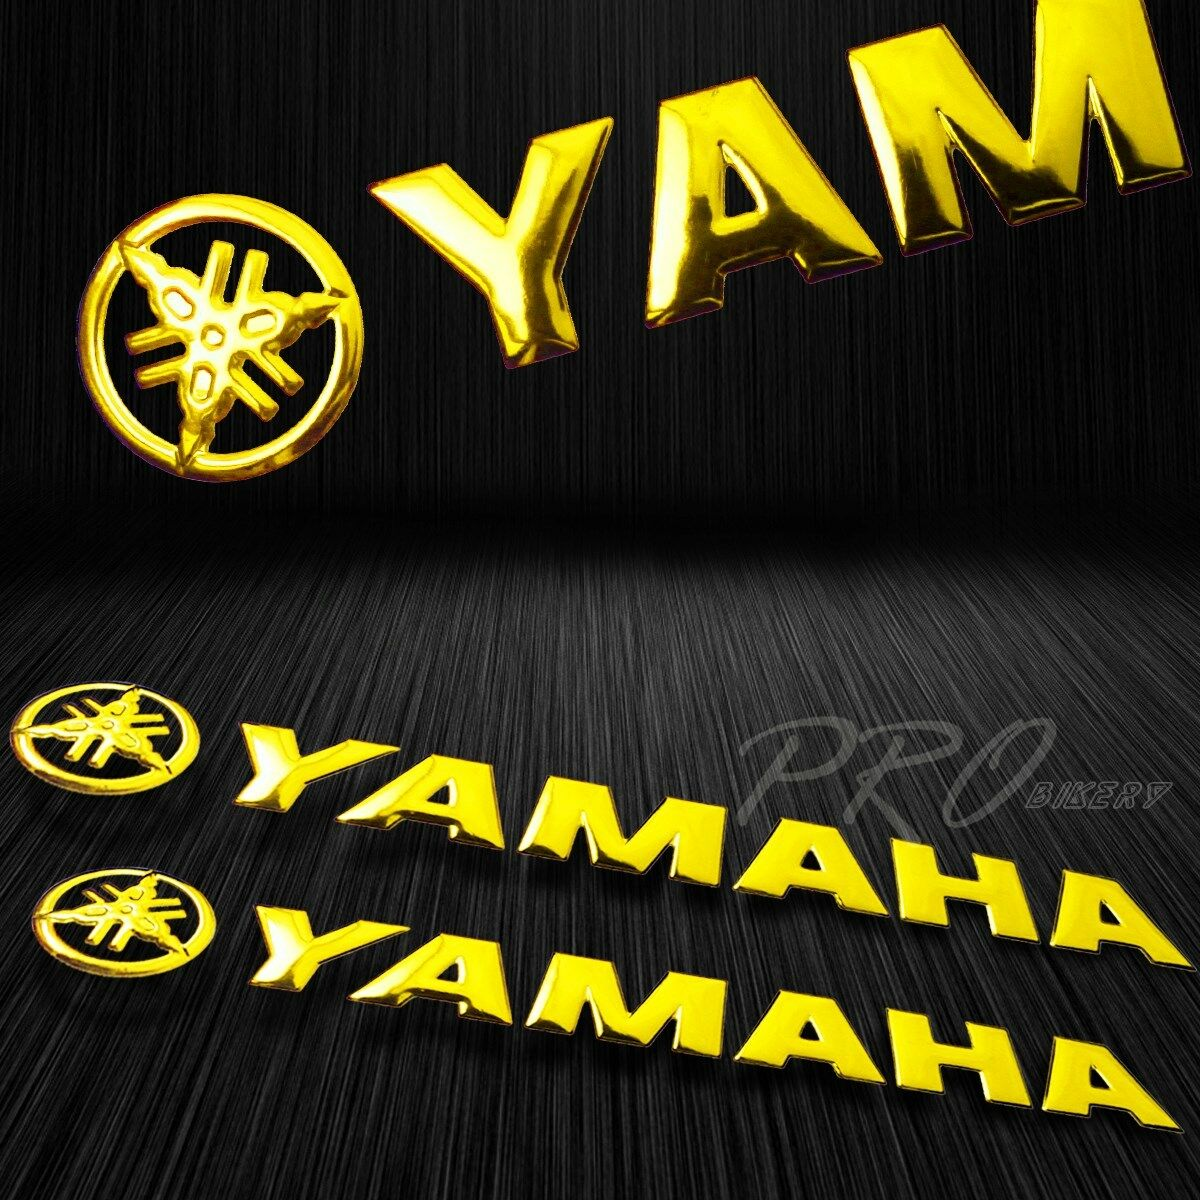 5 75 chromed logo letter decal 3d glossy fairing emblem sticker for yamaha gold